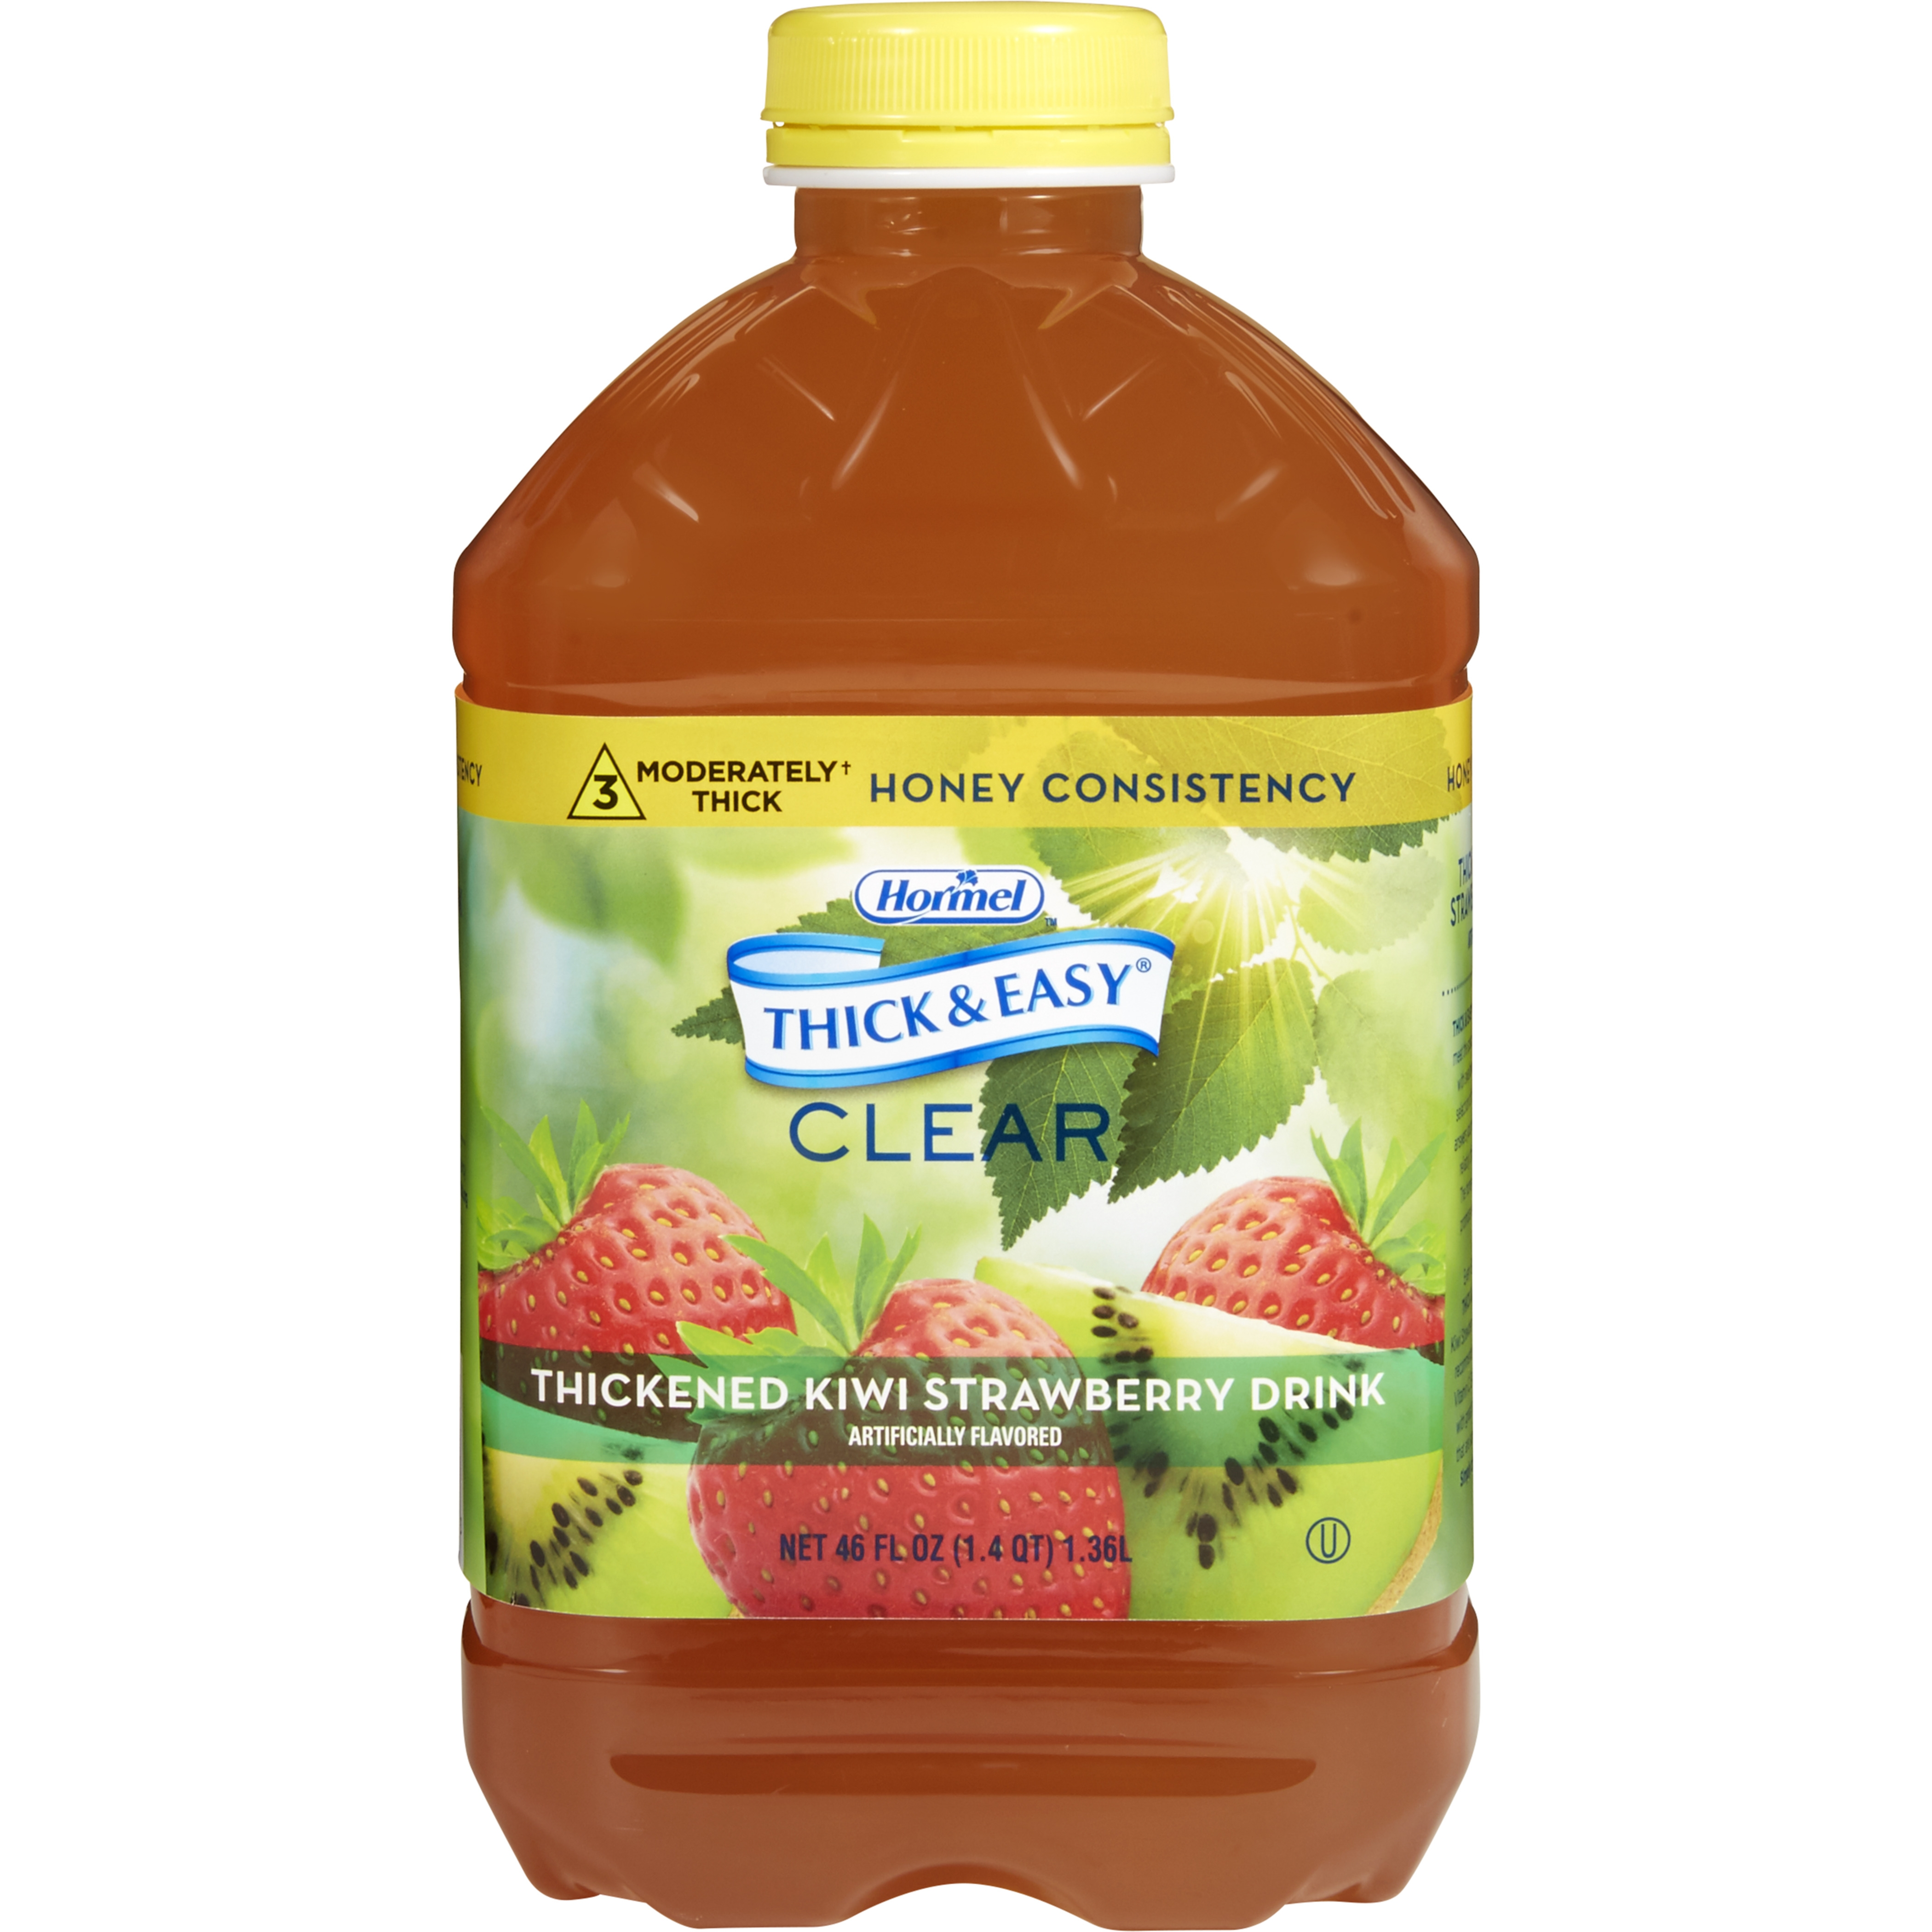 Thick & Easy Clear Honey Consistency Kiwi Strawberry Thickened Beverage, 46 oz. Bottle, 11840, 1 Each